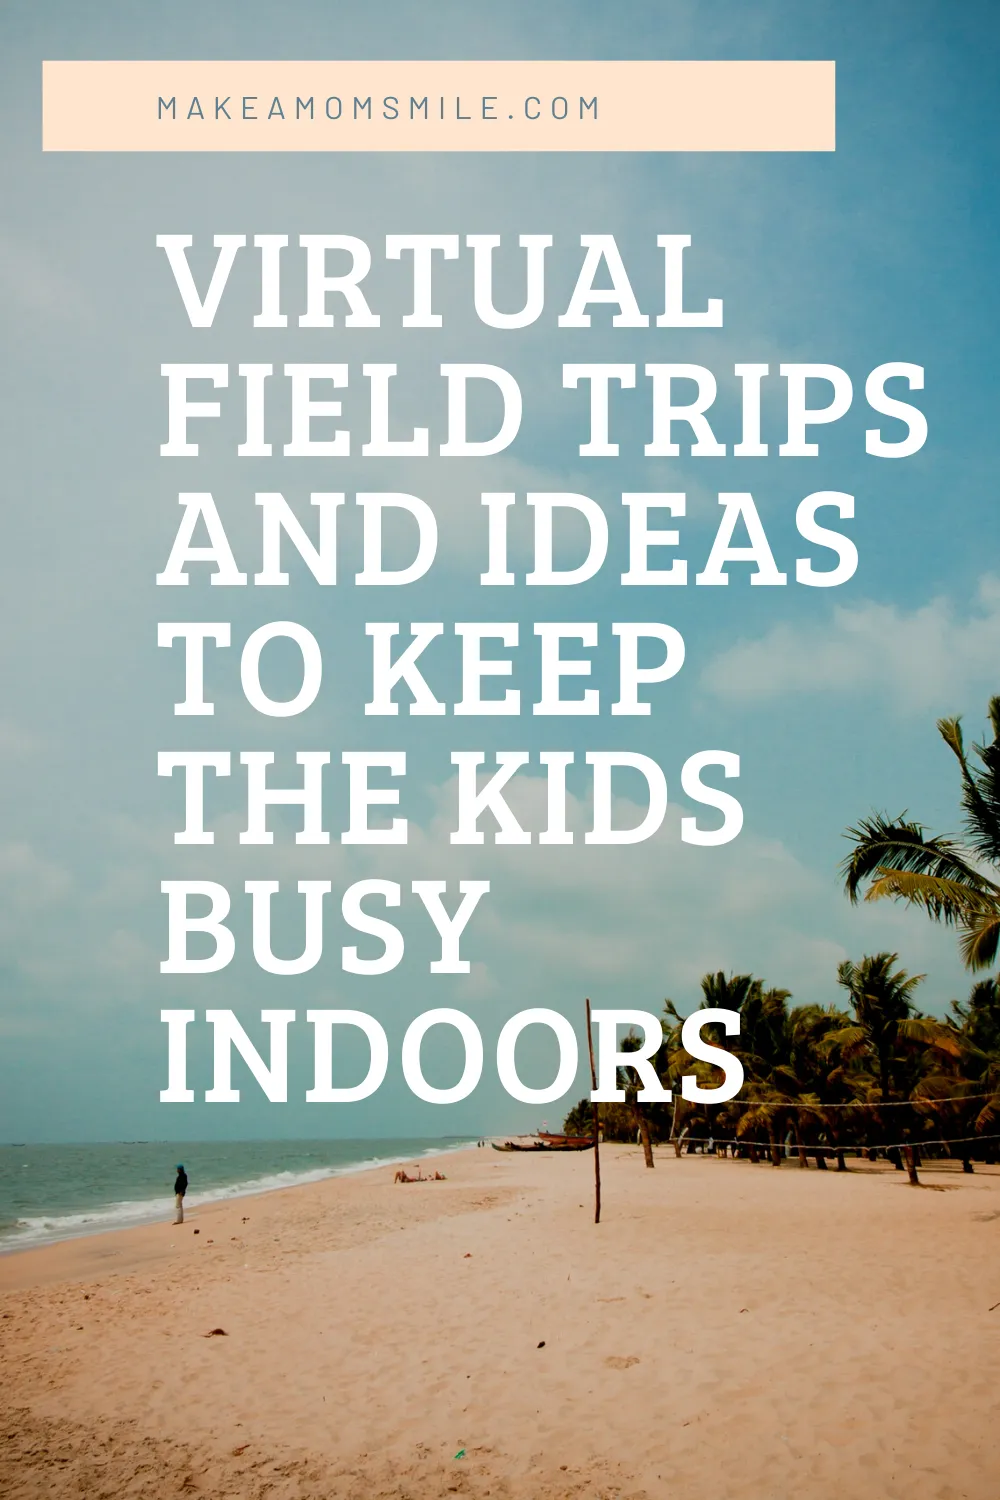 Virtual Field Trips & Ideas to Keep Kids Busy Indoors